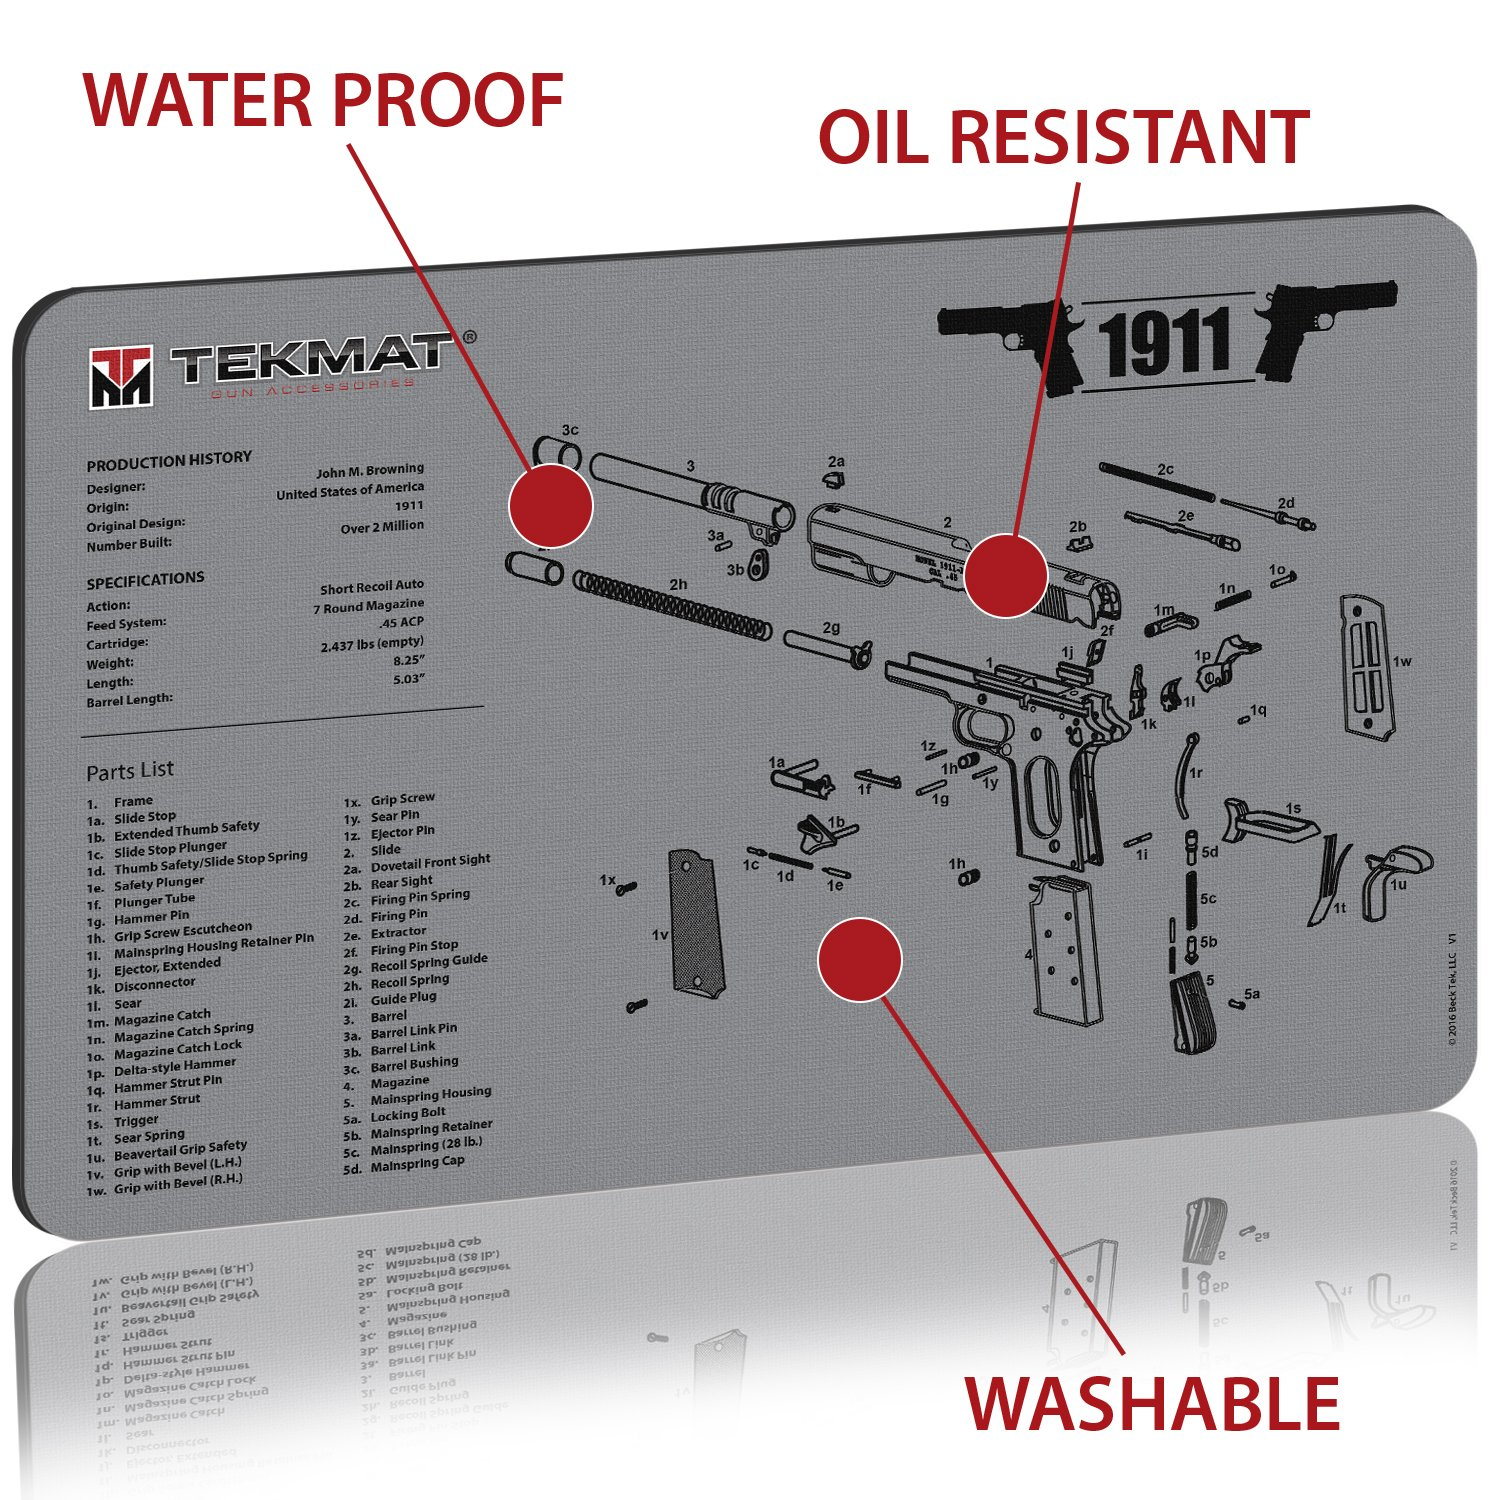 M1911 Diagram 1911 Magazine Free Download Wiring Diagrams Pictures Tekmat Cleaning Mat Thick Durable 1500x1500 Image